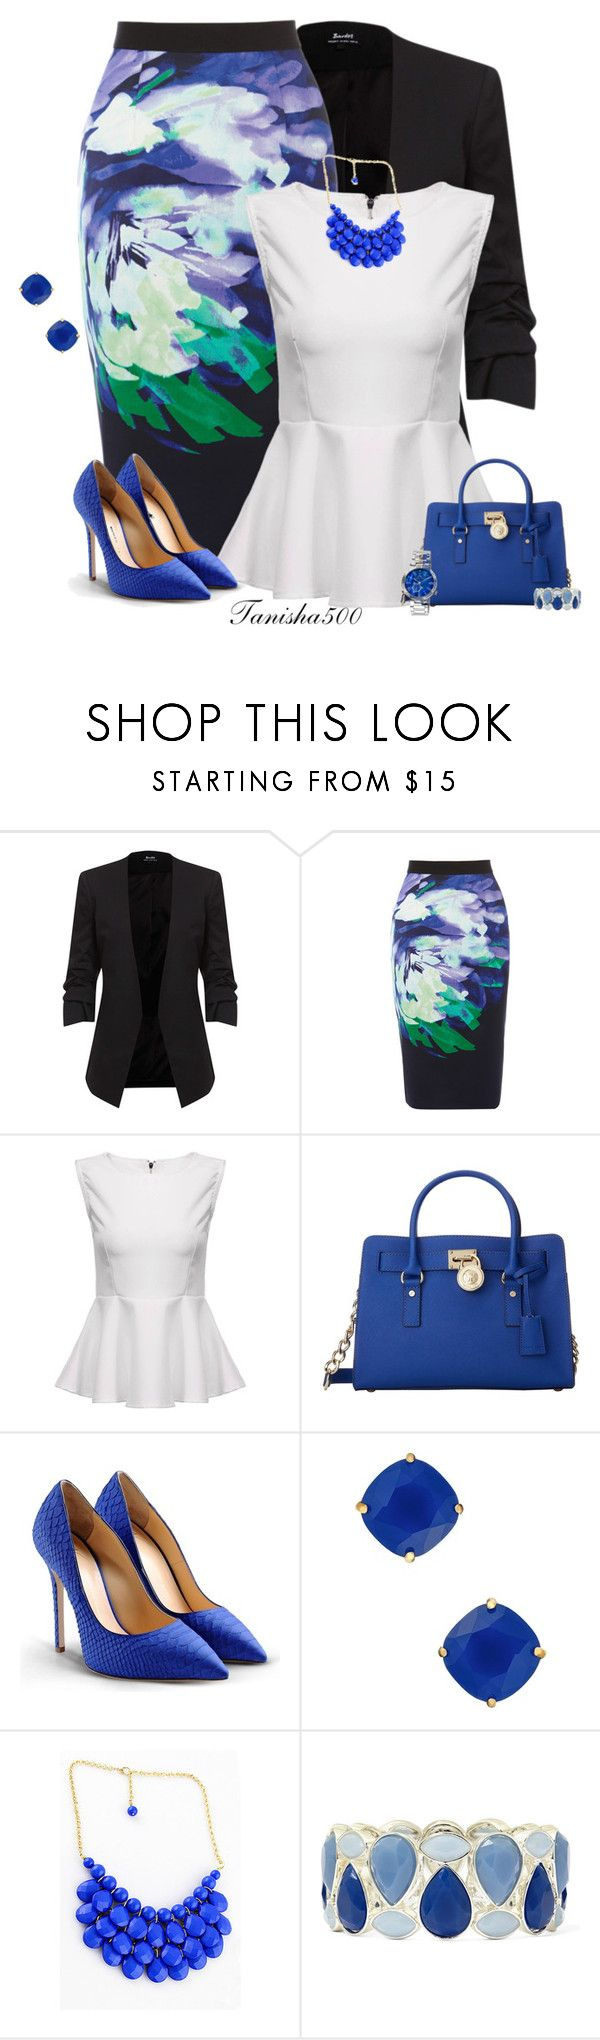 """Coast Clancy Skirt!!:)"" by tanisha500 ❤ liked on Polyvore featuring Coast, MICHAEL Michael Kors, Giuseppe Zanotti, Kate Spade, Liz Claiborne and Porsamo Bleu"